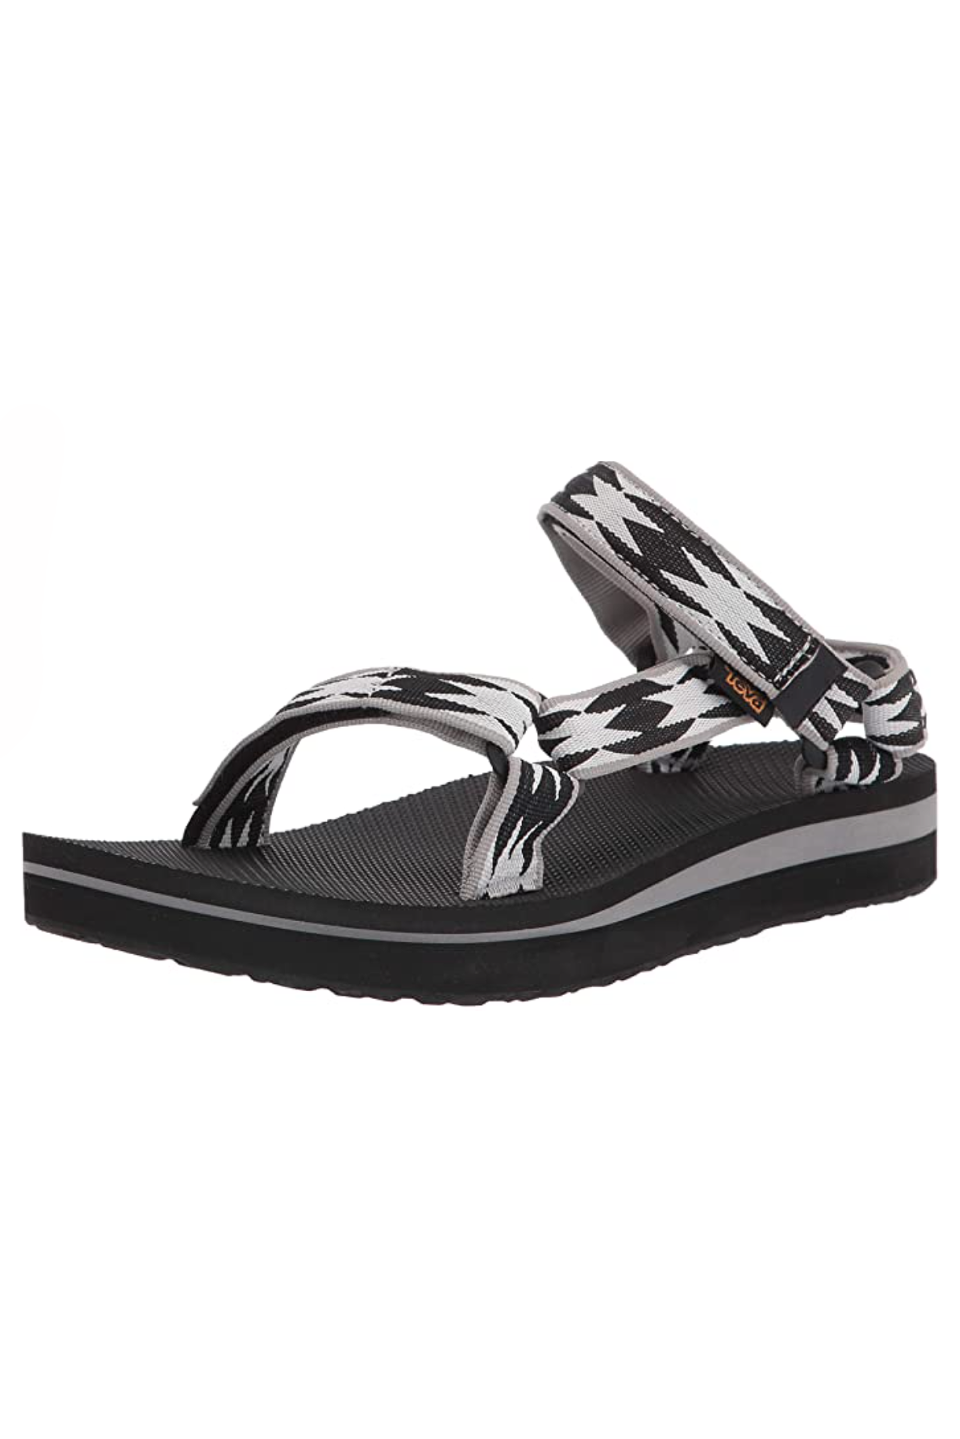 """<p><strong>Teva</strong></p><p>amazon.com</p><p><strong>$47.93</strong></p><p><a href=""""https://www.amazon.com/dp/B07TBX986X?tag=syn-yahoo-20&ascsubtag=%5Bartid%7C10058.g.27205502%5Bsrc%7Cyahoo-us"""" rel=""""nofollow noopener"""" target=""""_blank"""" data-ylk=""""slk:SHOP IT"""" class=""""link rapid-noclick-resp"""">SHOP IT</a></p><p>This best-selling sandal has been around for years and there's a reason why. The sole actually molds to fit your feet as you wear them which means that your arches will stay supported every single time you put them on.</p>"""